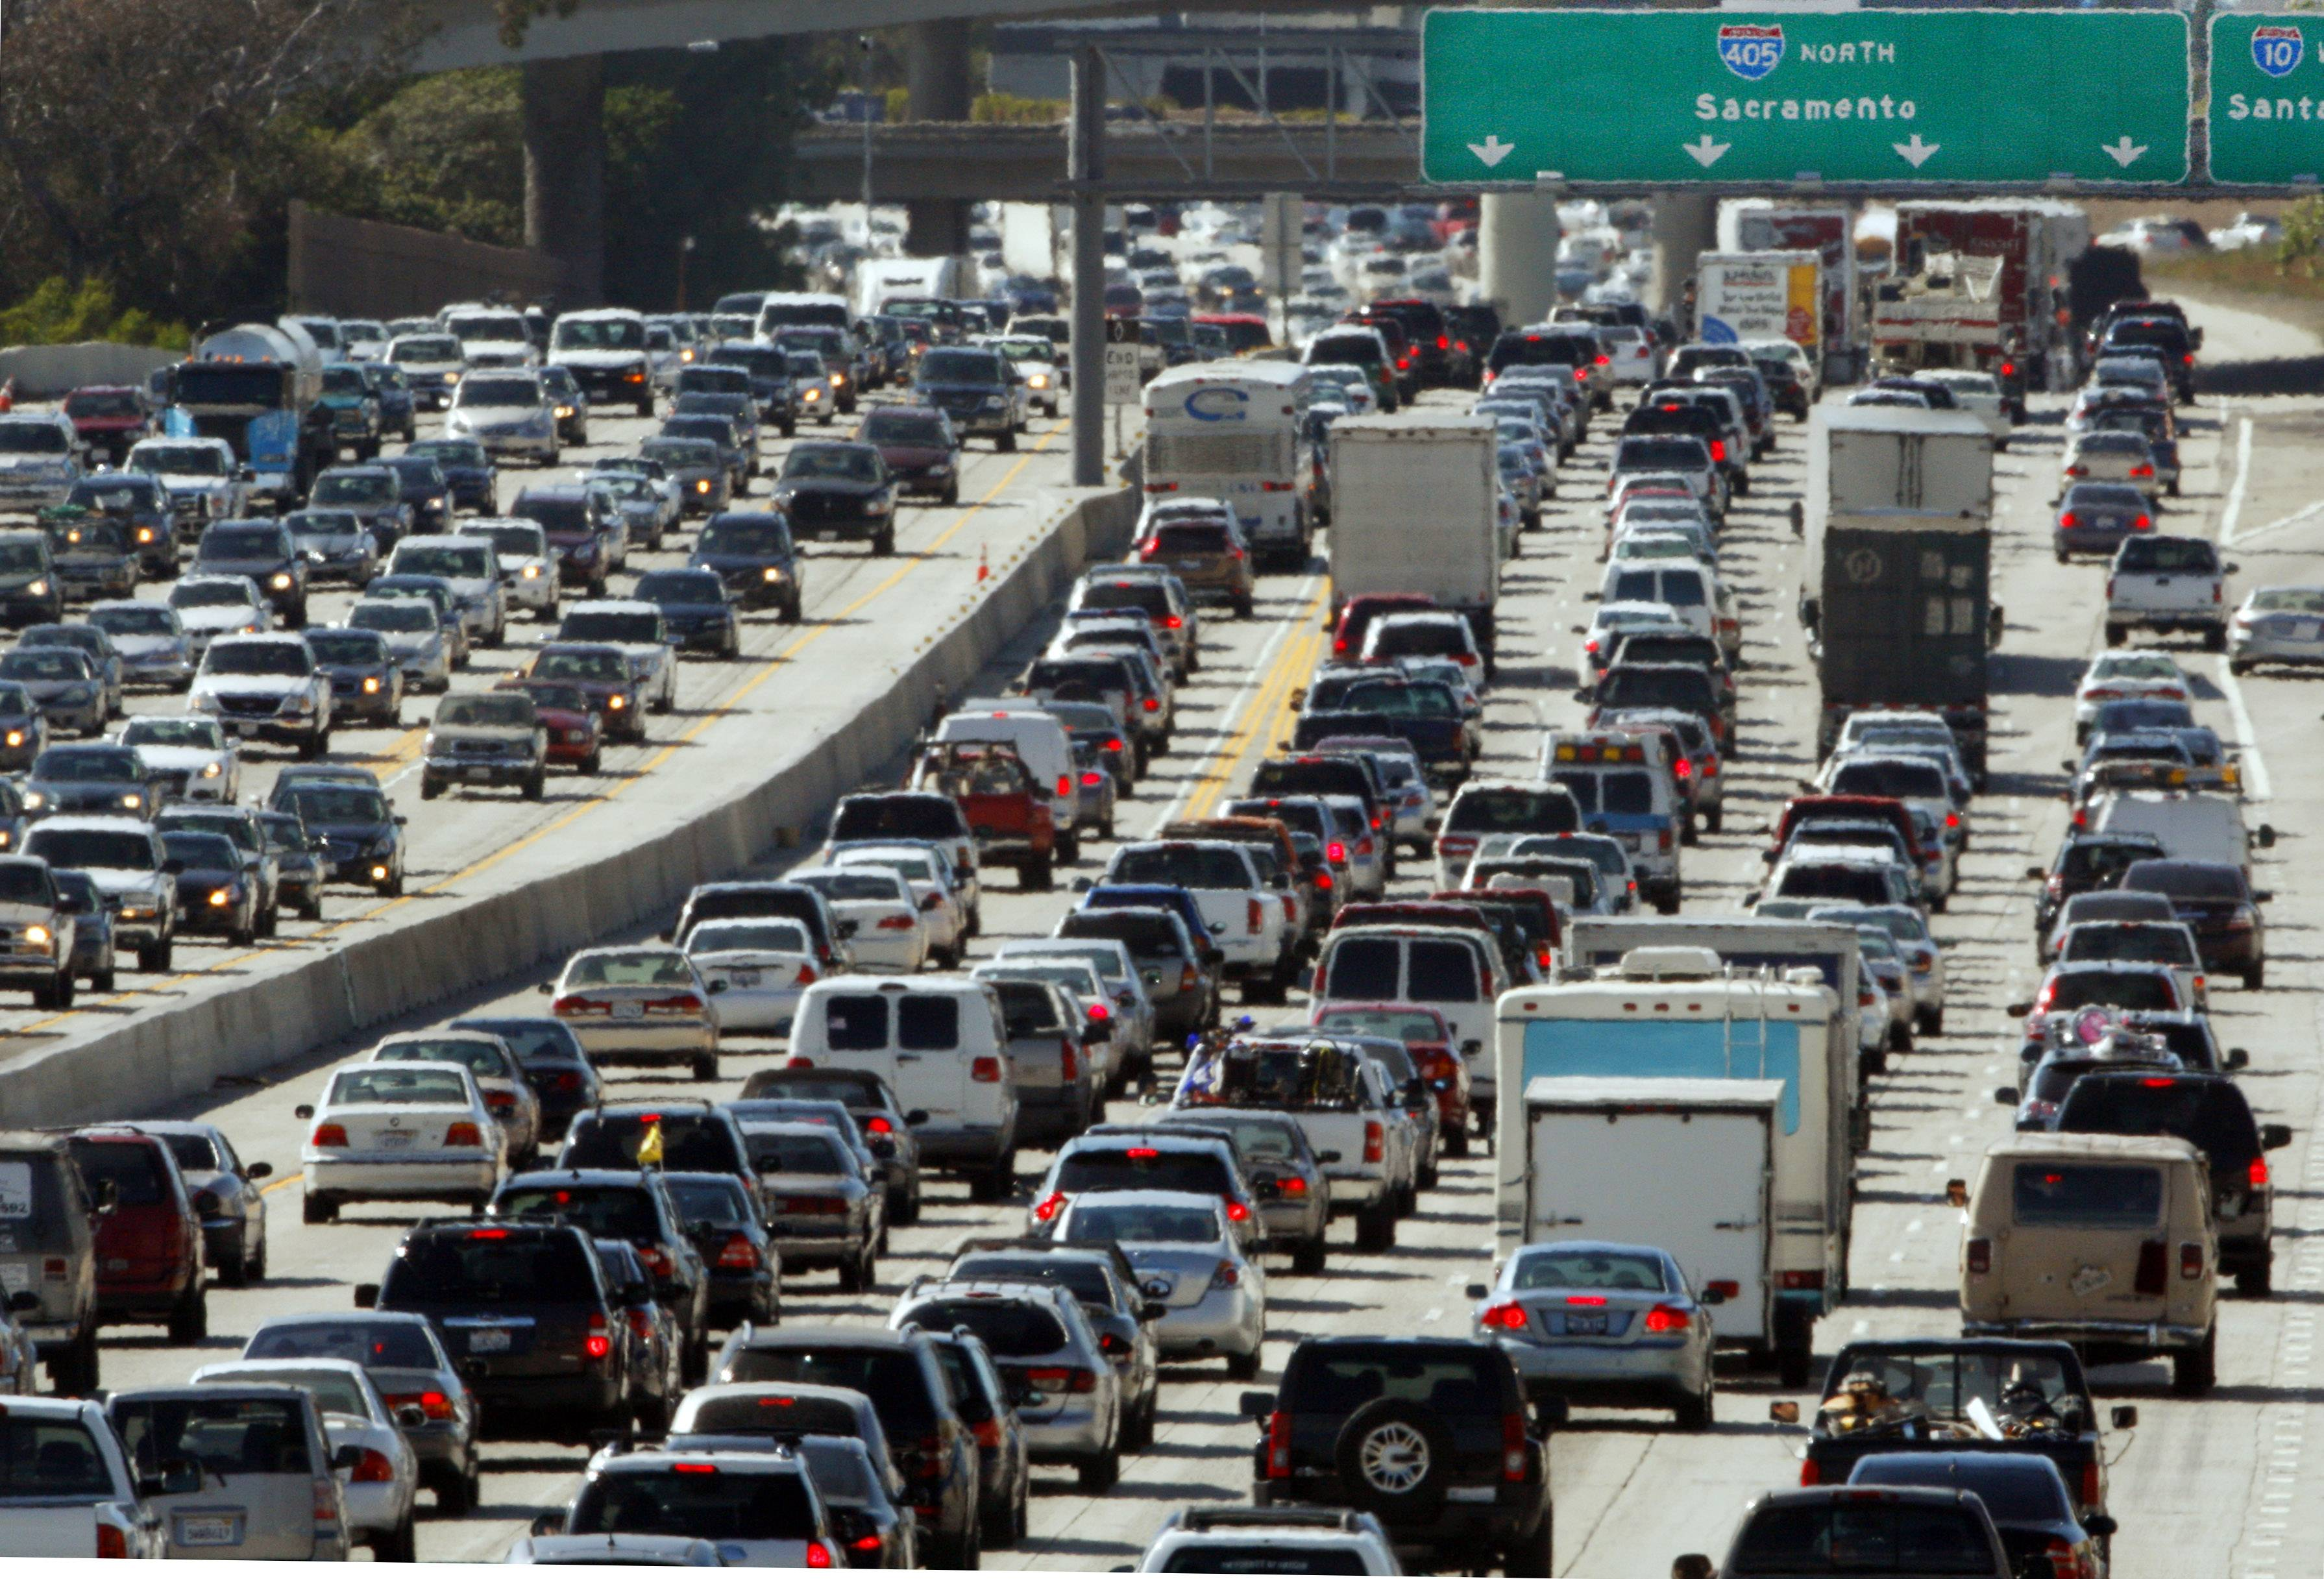 Traffic jammed in both directions on Interstate 405 on the west side of Los Angeles.